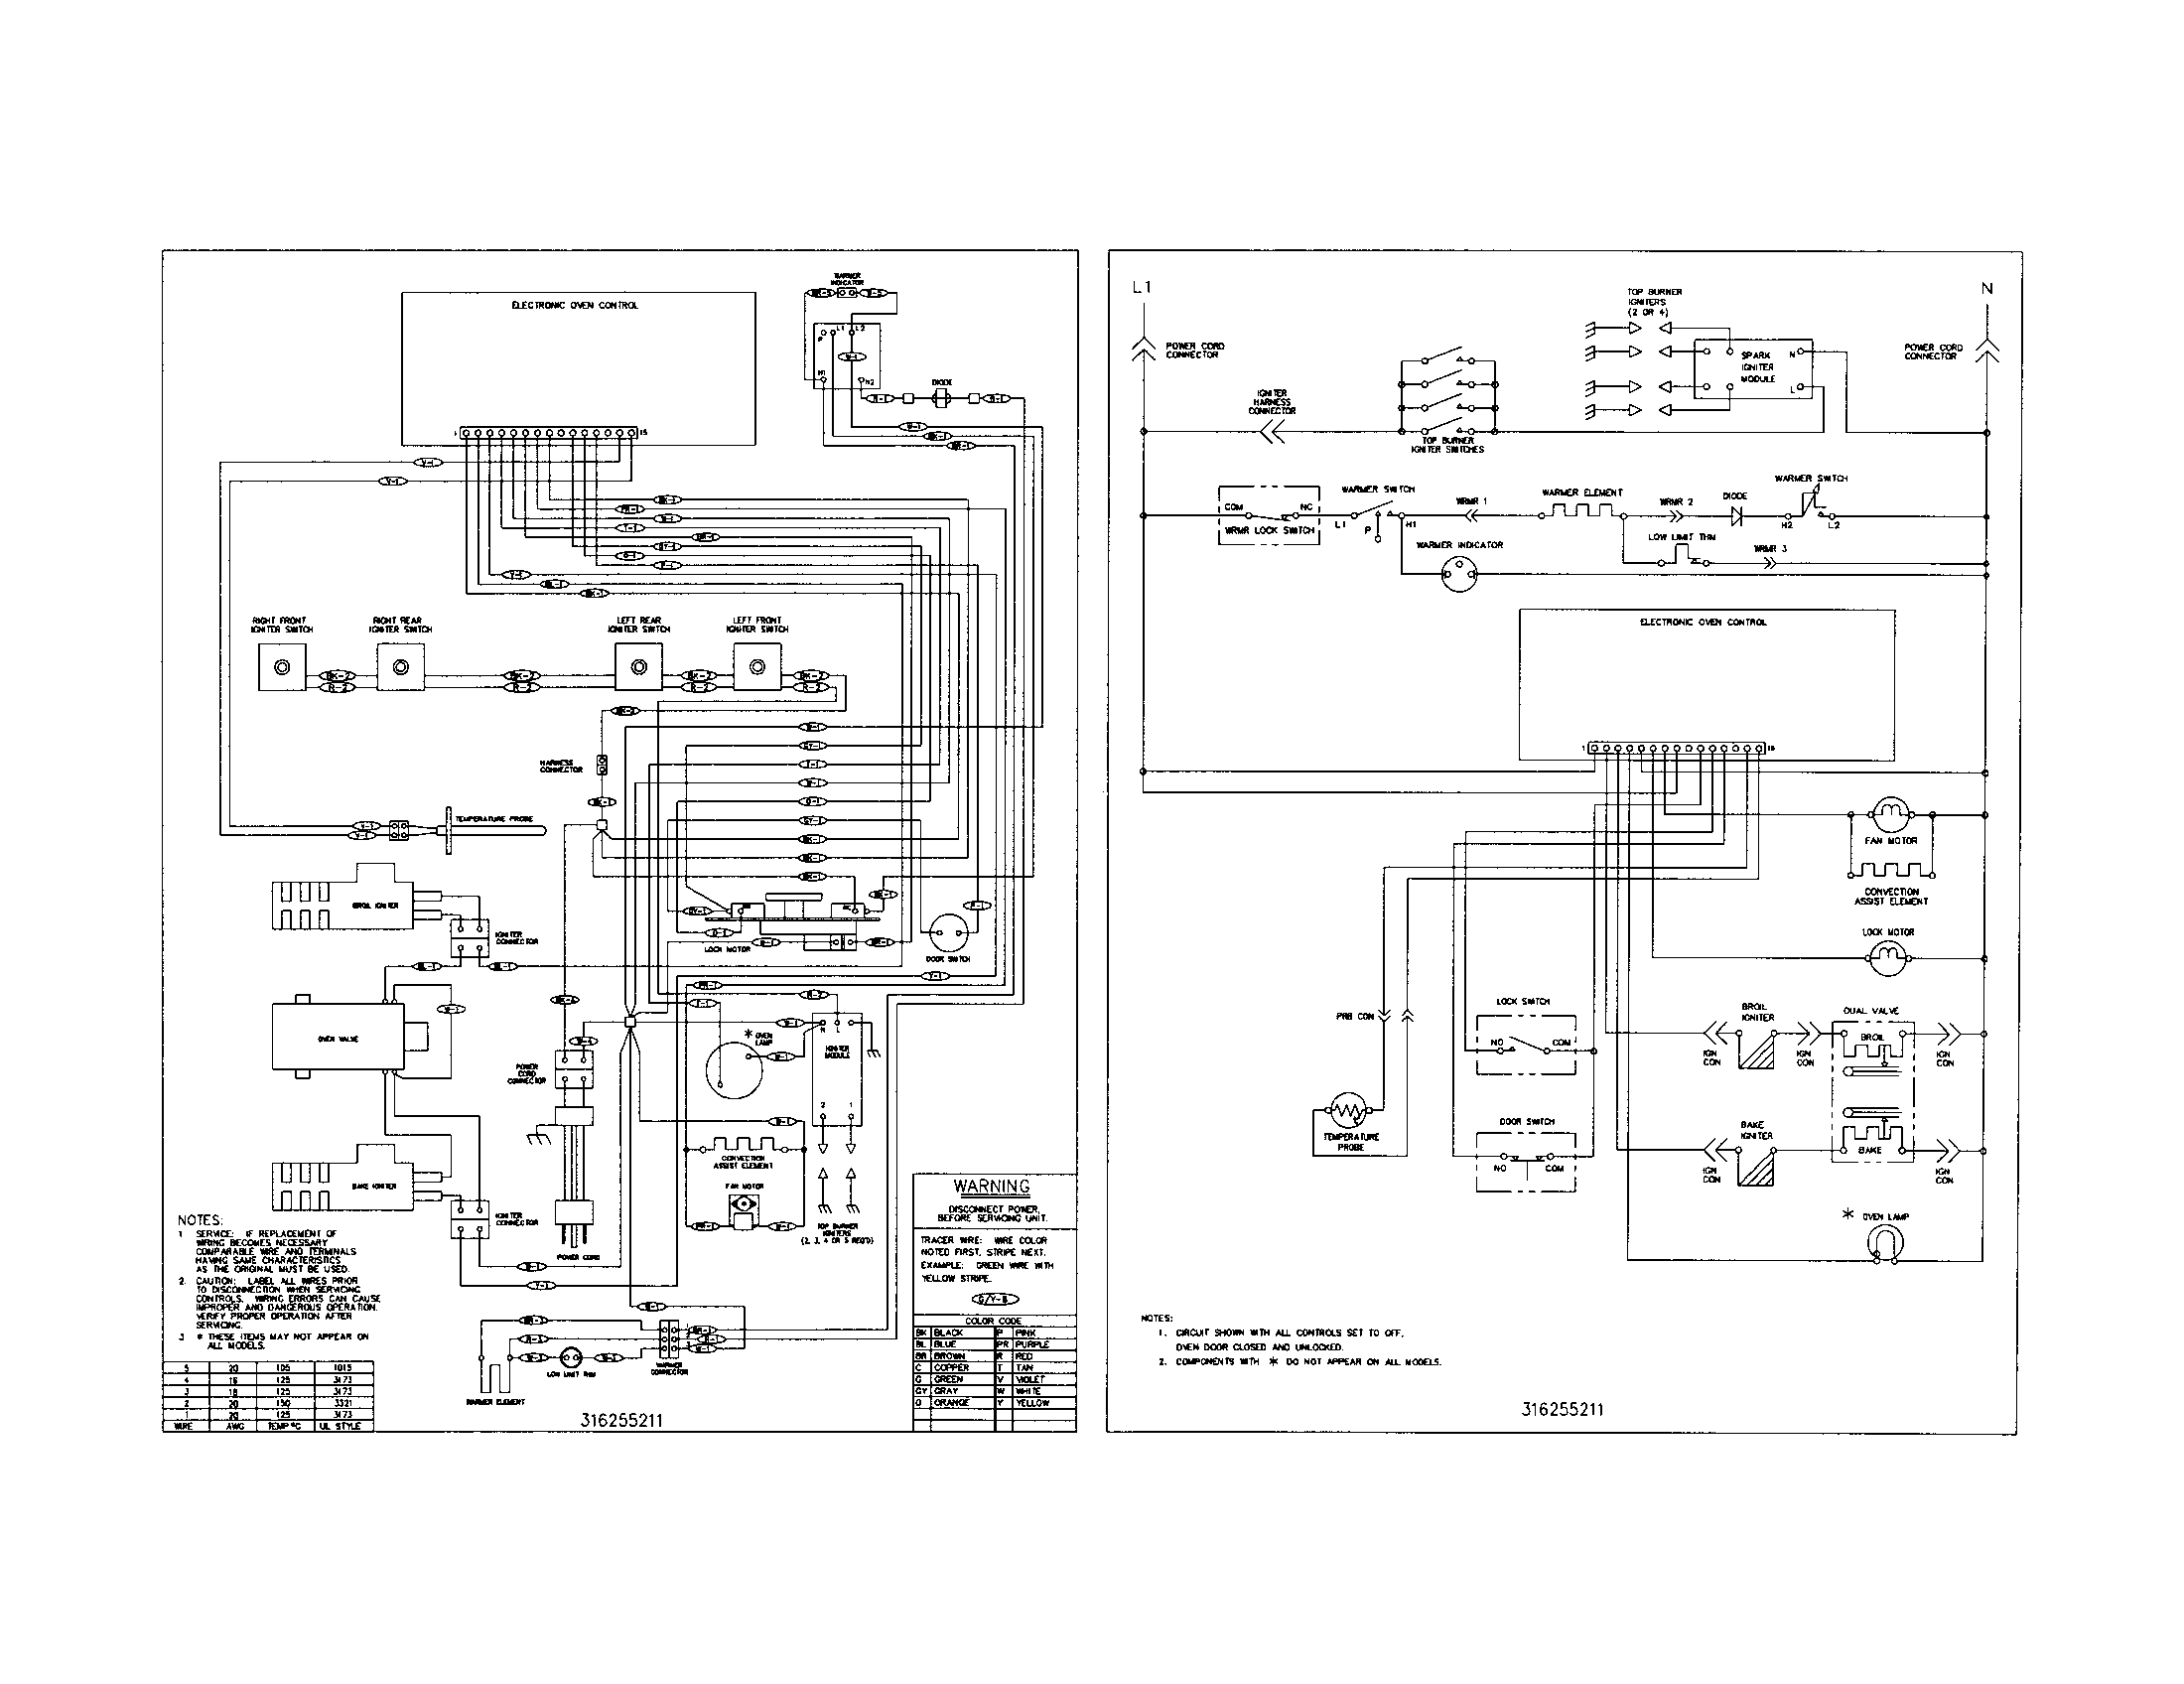 frigidaire dryer wiring diagram Download-Frigidaire Dryer Wiring Diagram Luxury Amazing Free Sample Ideas Frigidaire Dryer Wiring Diagram Ideas 16-g